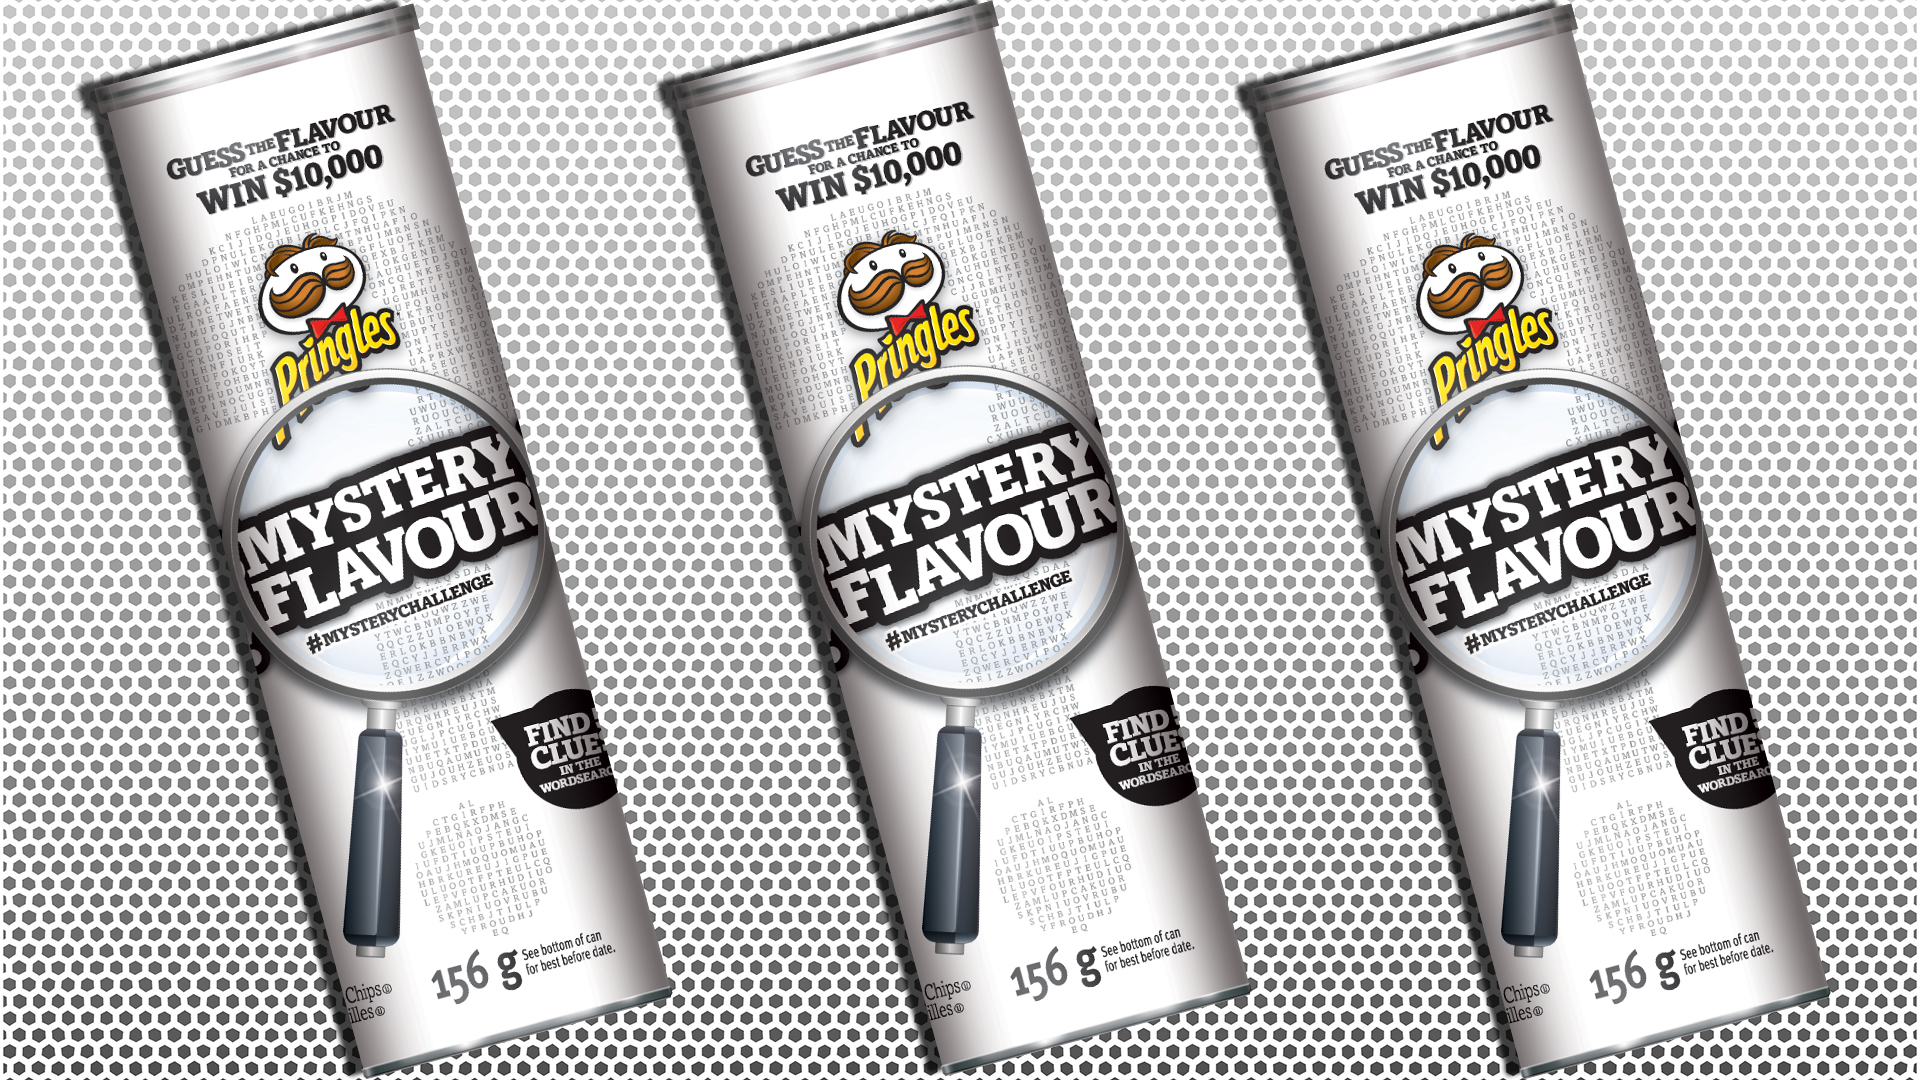 Pringles teases new mystery chip flavor with a familiar twist